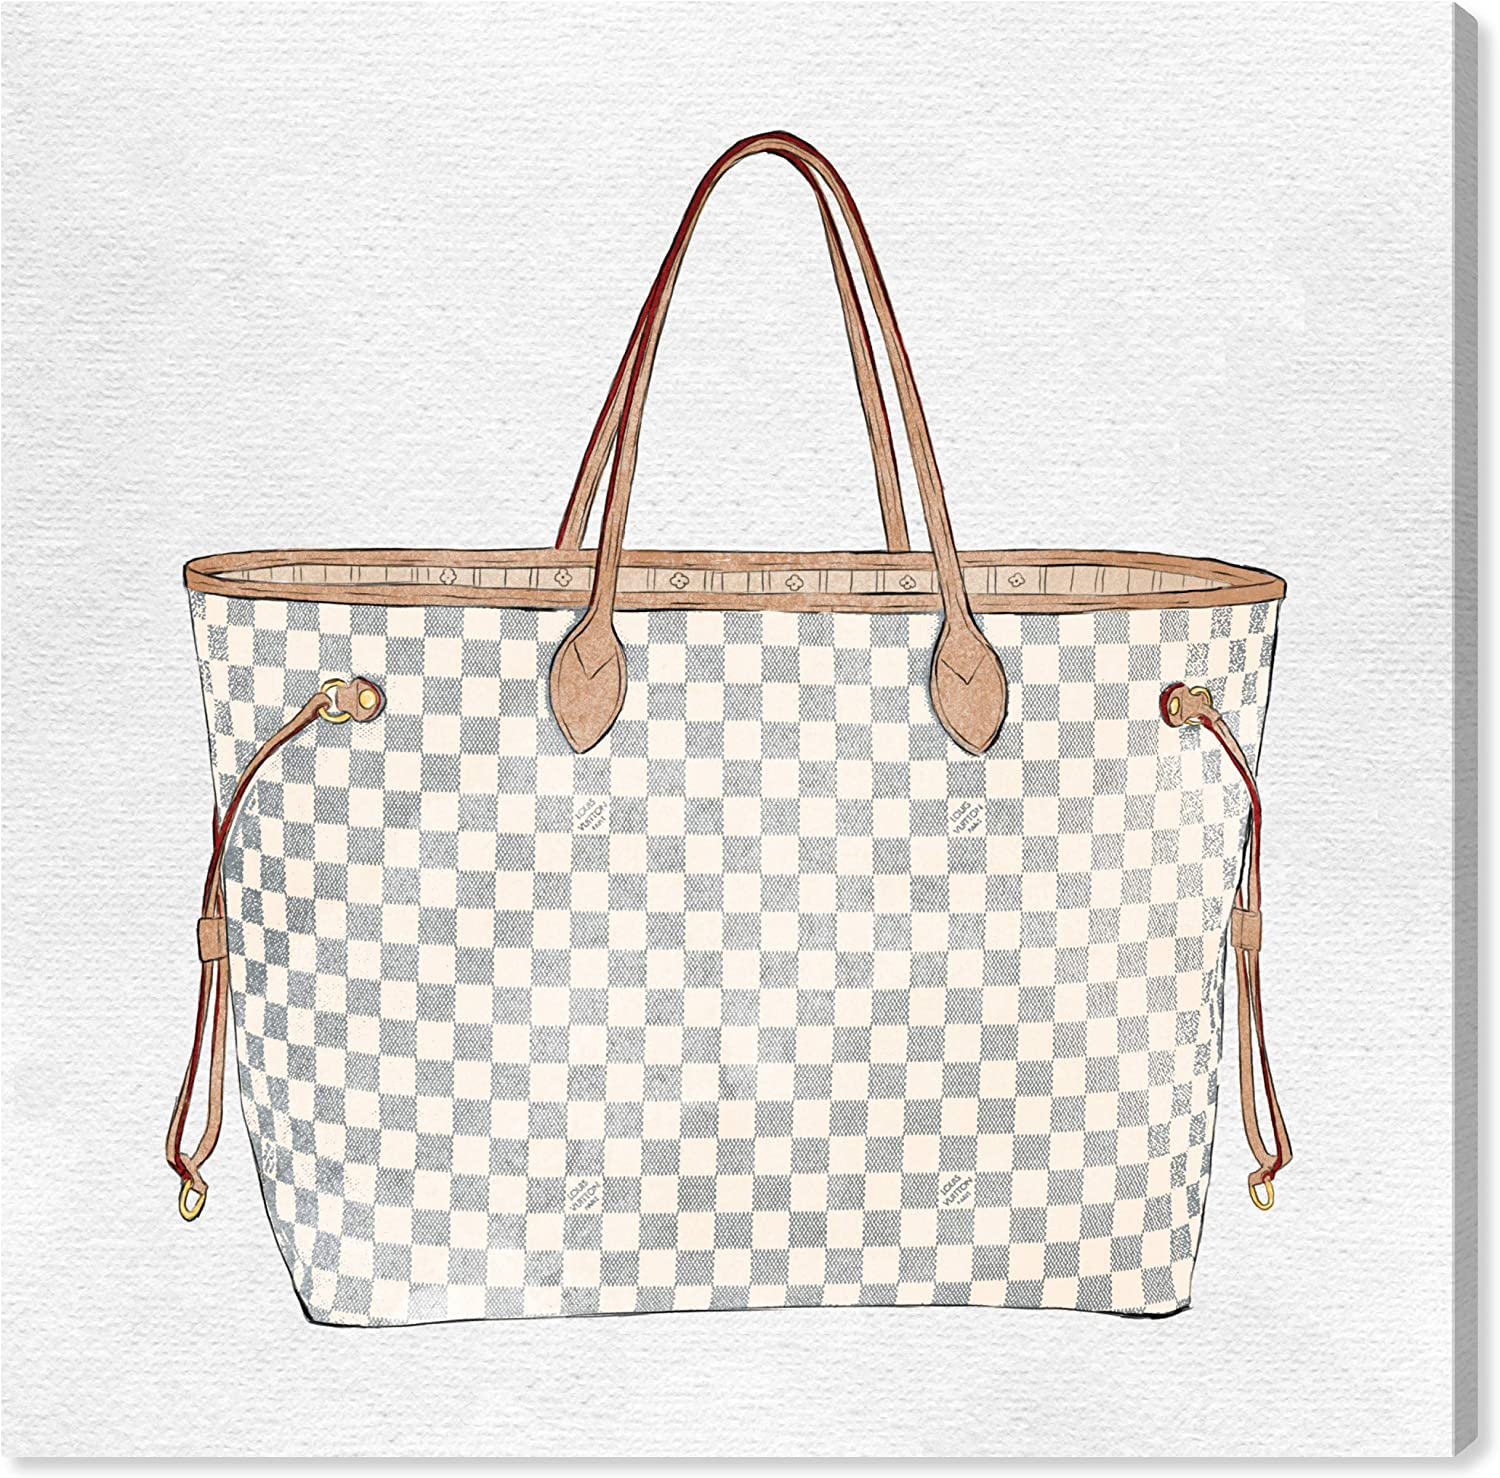 """The Oliver Gal Artist Co. Fashion and Glam Wall Art Canvas Prints 'Royal Handbag Ivory' Home Décor, 43"""" x 43"""", White, Brown"""